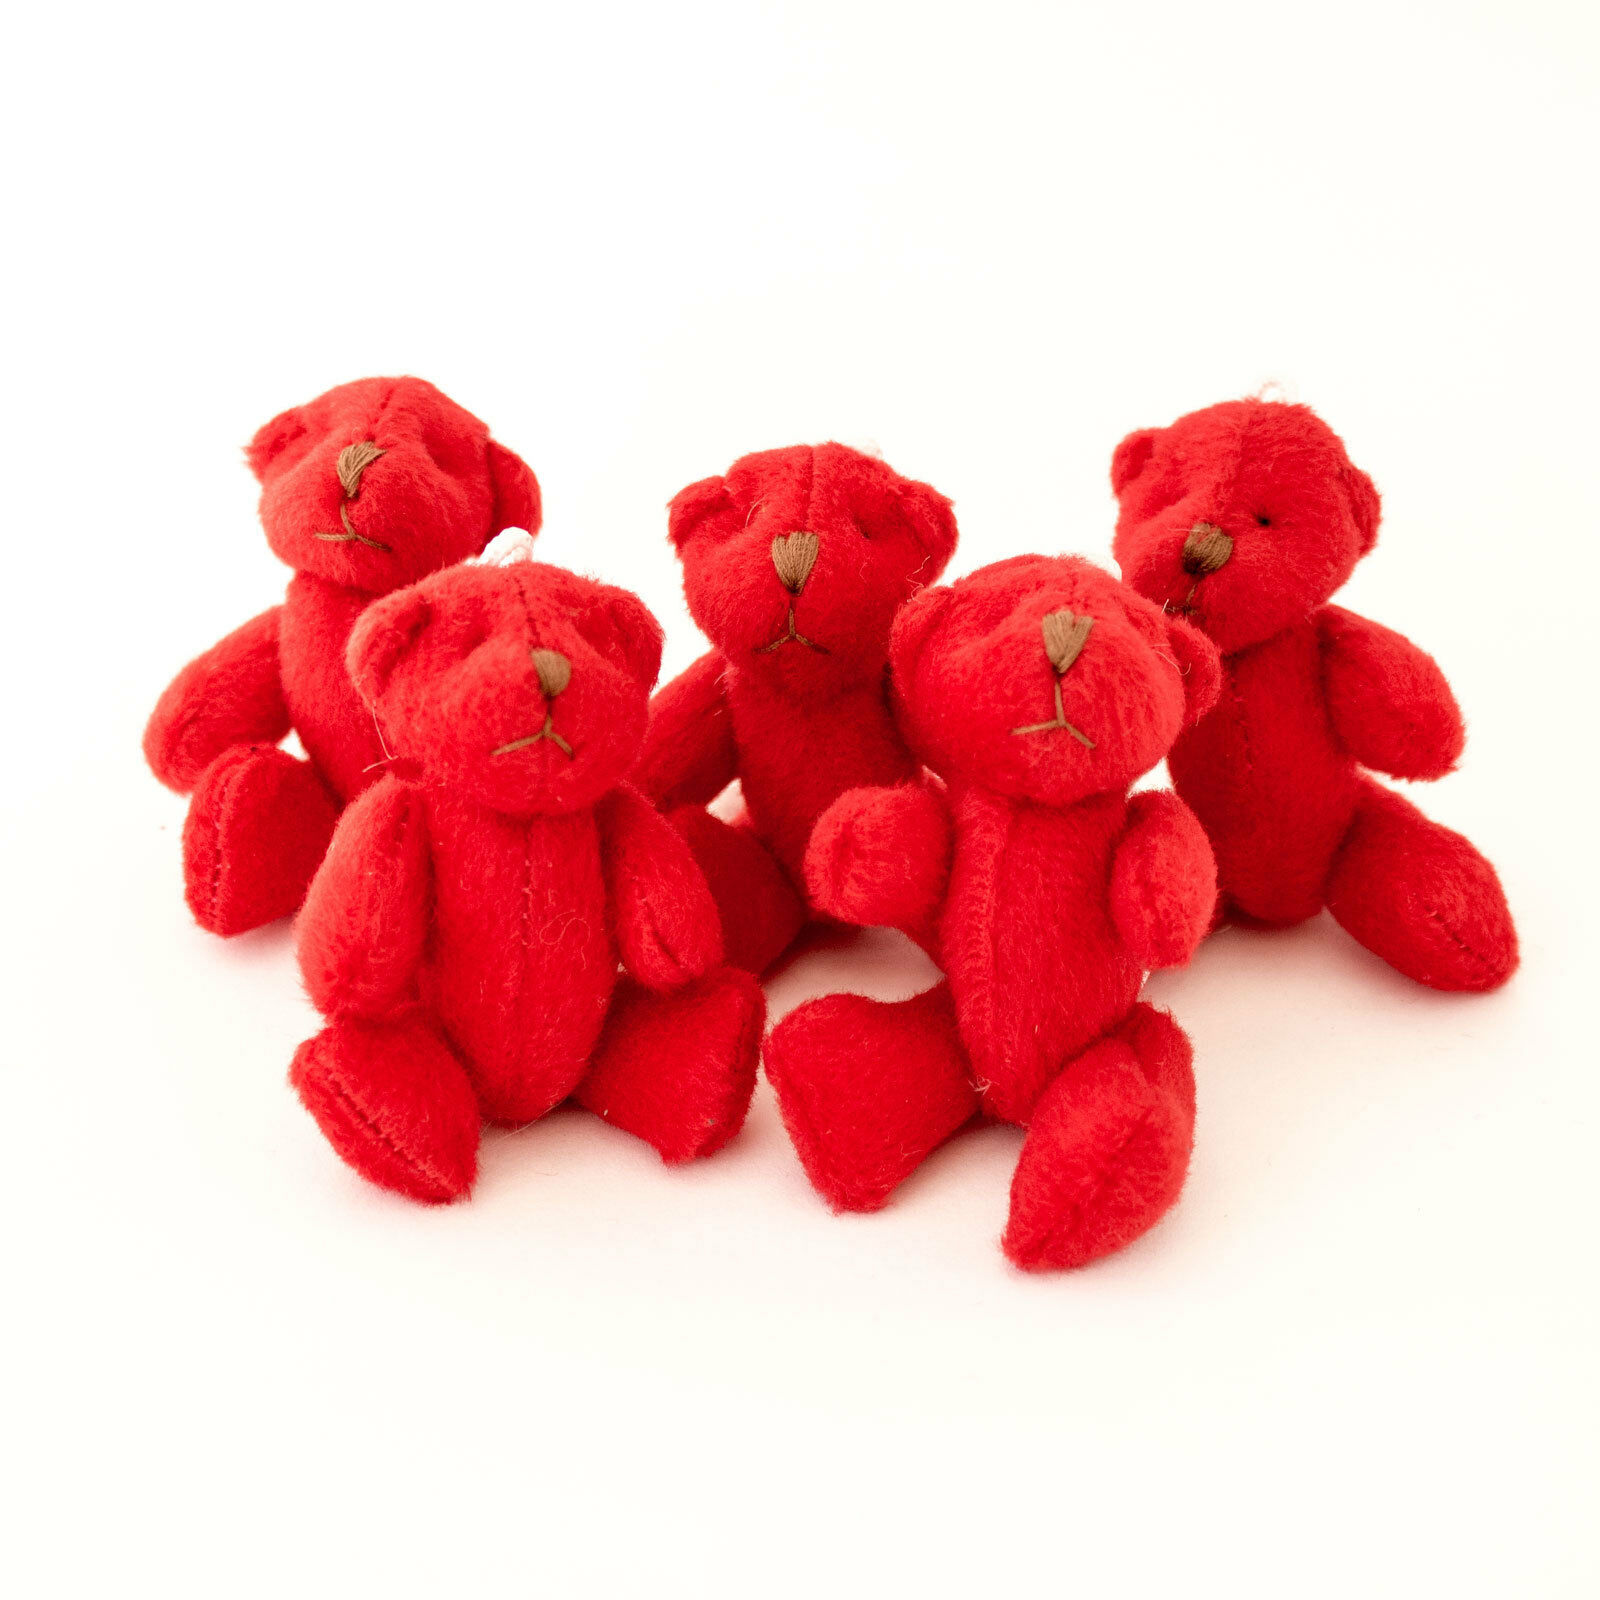 NEW - 200 X ROT Teddy Bears - Small Cute Cuddly Adorable - Gift Present